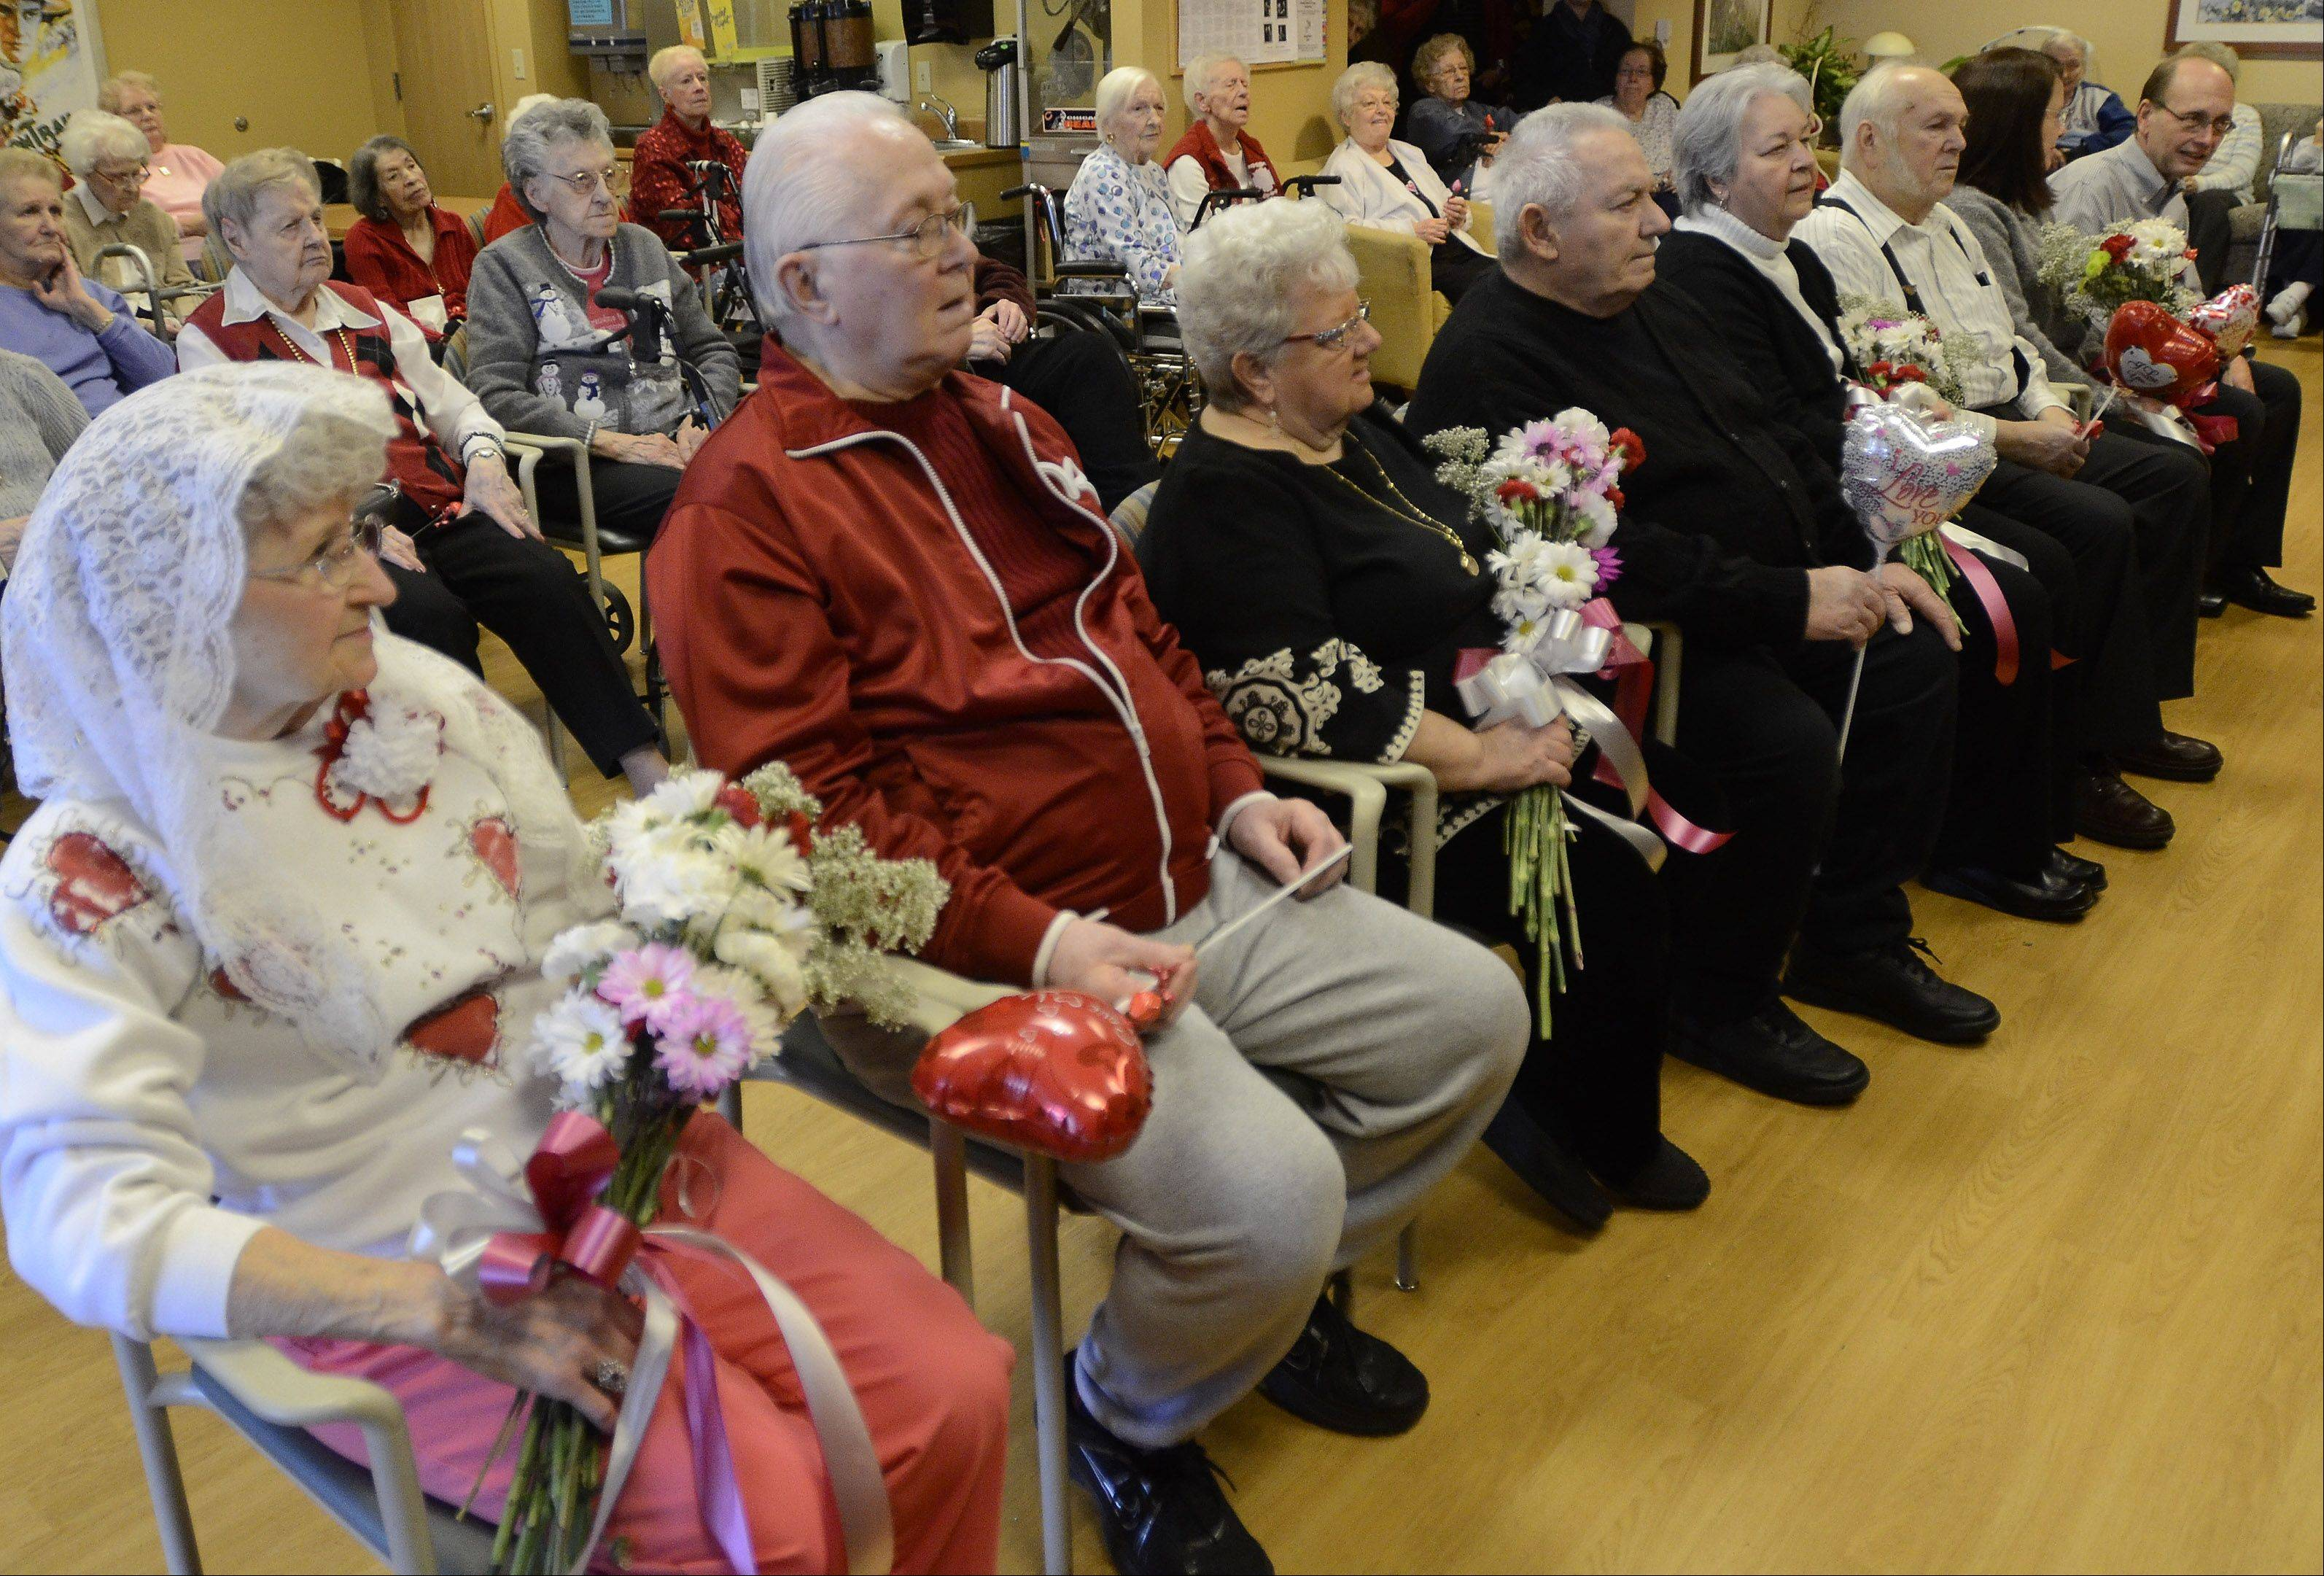 From left, Helen and Arthur Polich, Sue and Bob Richardi, Gayle and David Voyles and Linda and Frank Broz, celebrated Valentine's Day by renewing their wedding vows Thursday at Victory Centre of Bartlett.